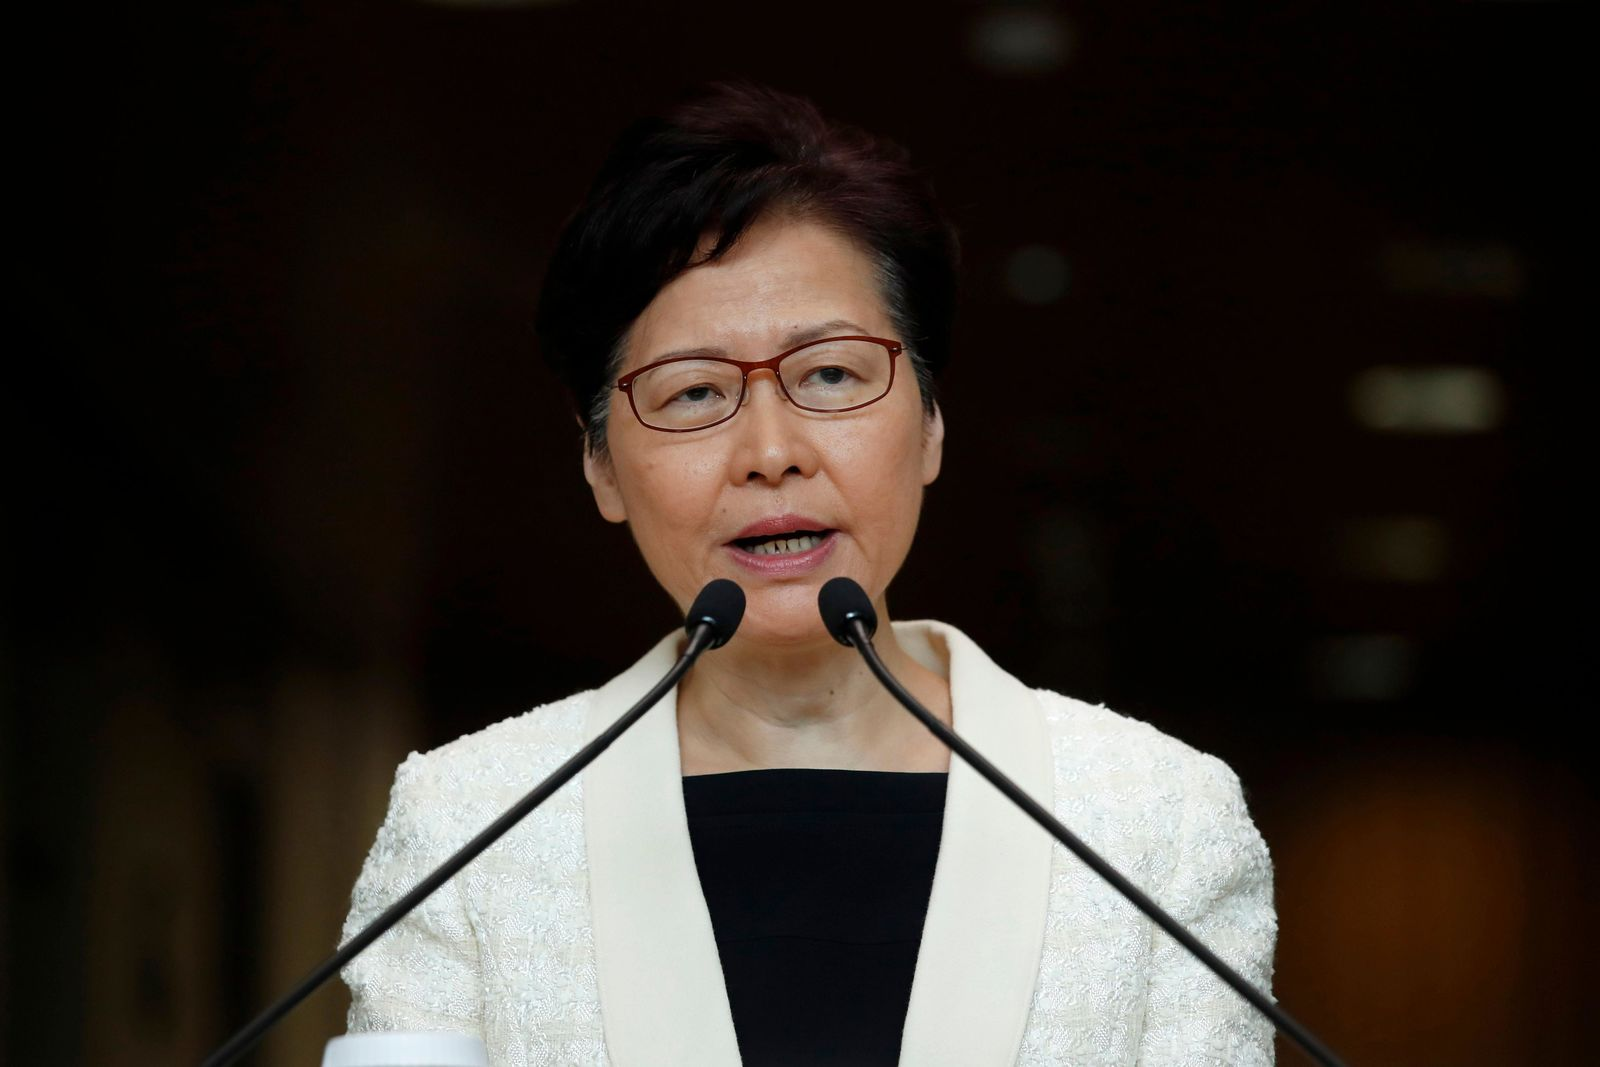 FILE- In this Sept. 3, 2019, file photo, Hong Kong Chief Executive Carrie Lam speaks during a press conference in Hong Kong. Hong Kong's government has a meeting scheduled on Wednesday, Sept. 4 amid speculation leader Carrie Lam may formally withdraw an extradition bill as protesters have demanded. (AP Photo/Jae C. Hong, File)